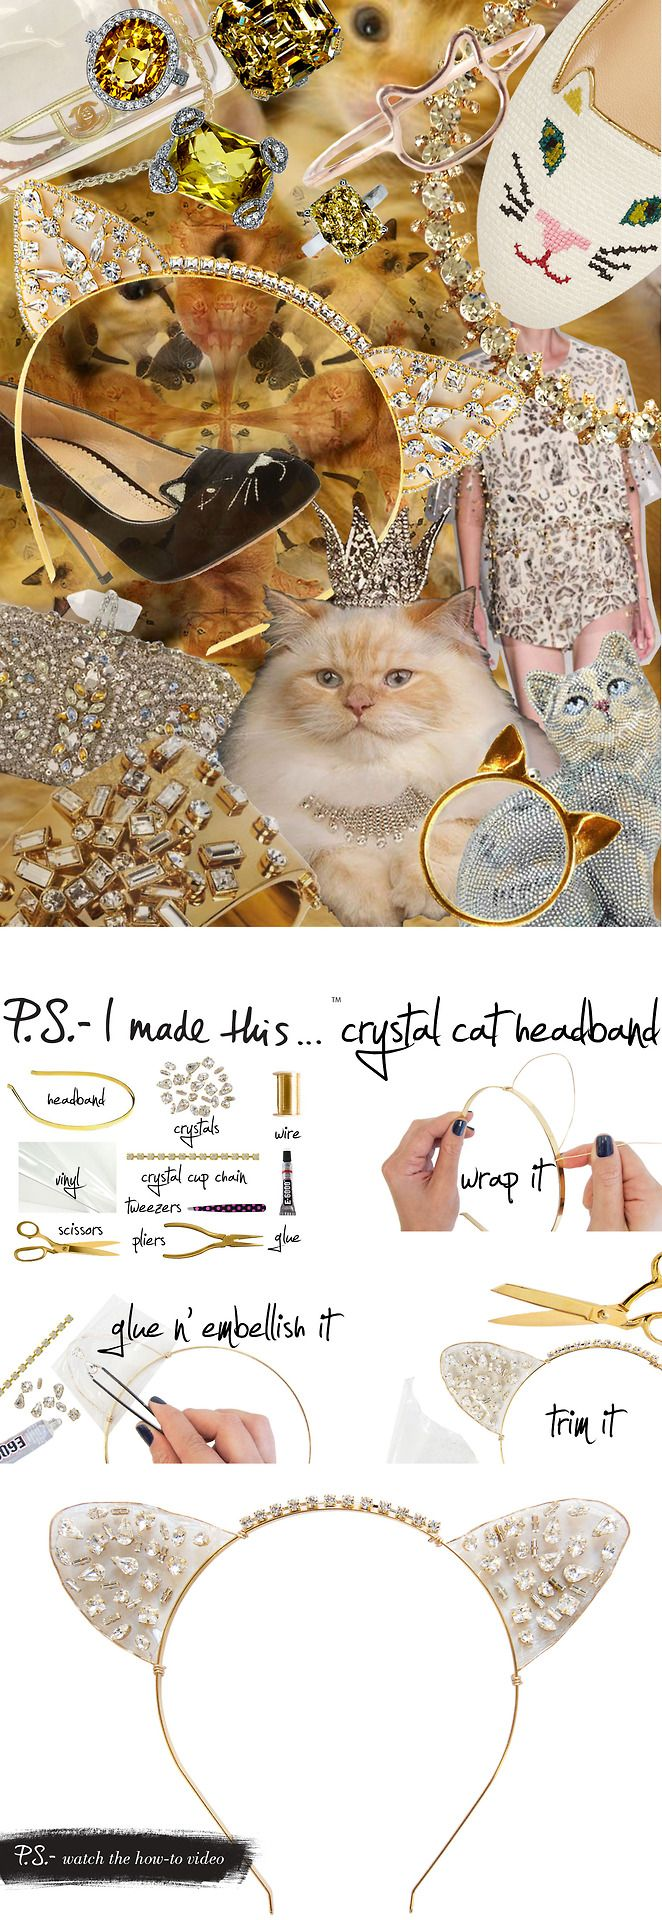 P.S.-I made this...Crystal Cat Headband #PSIMADETHIS #DIY